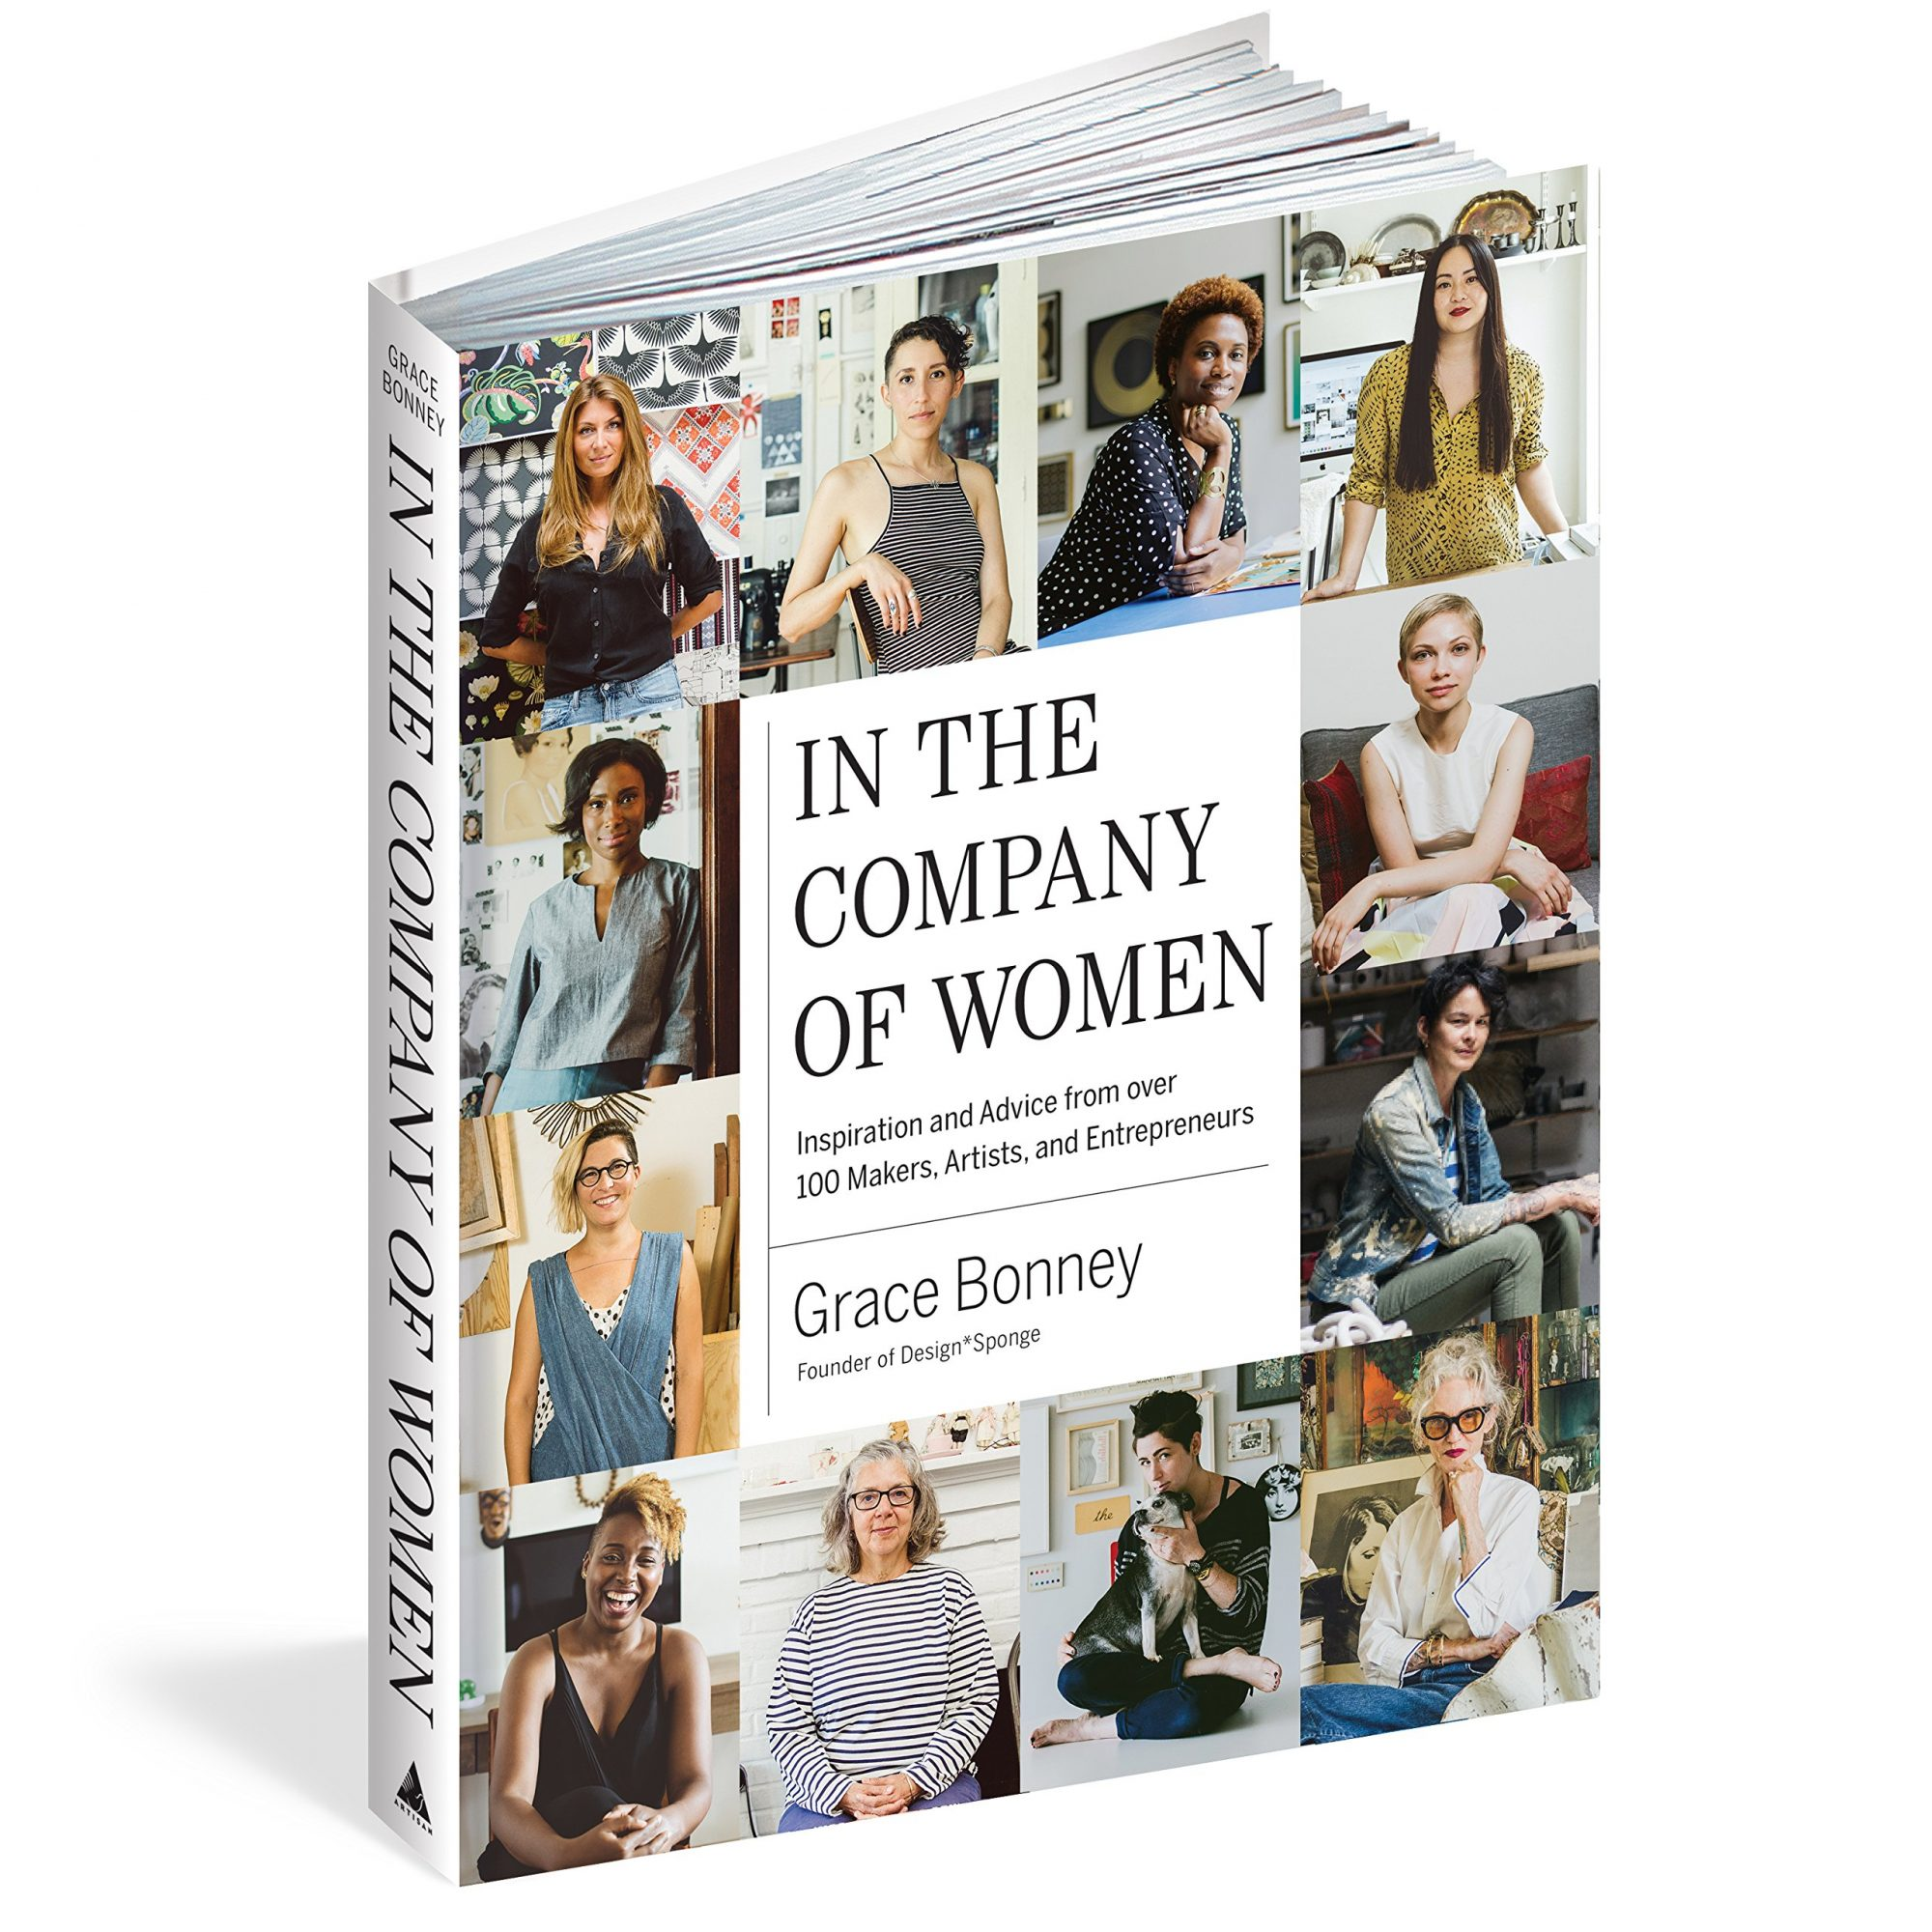 In the Company of Women: Inspiration and Advice from over 100 Makers, Artists, and Entrepreneurs by Grace Bonney